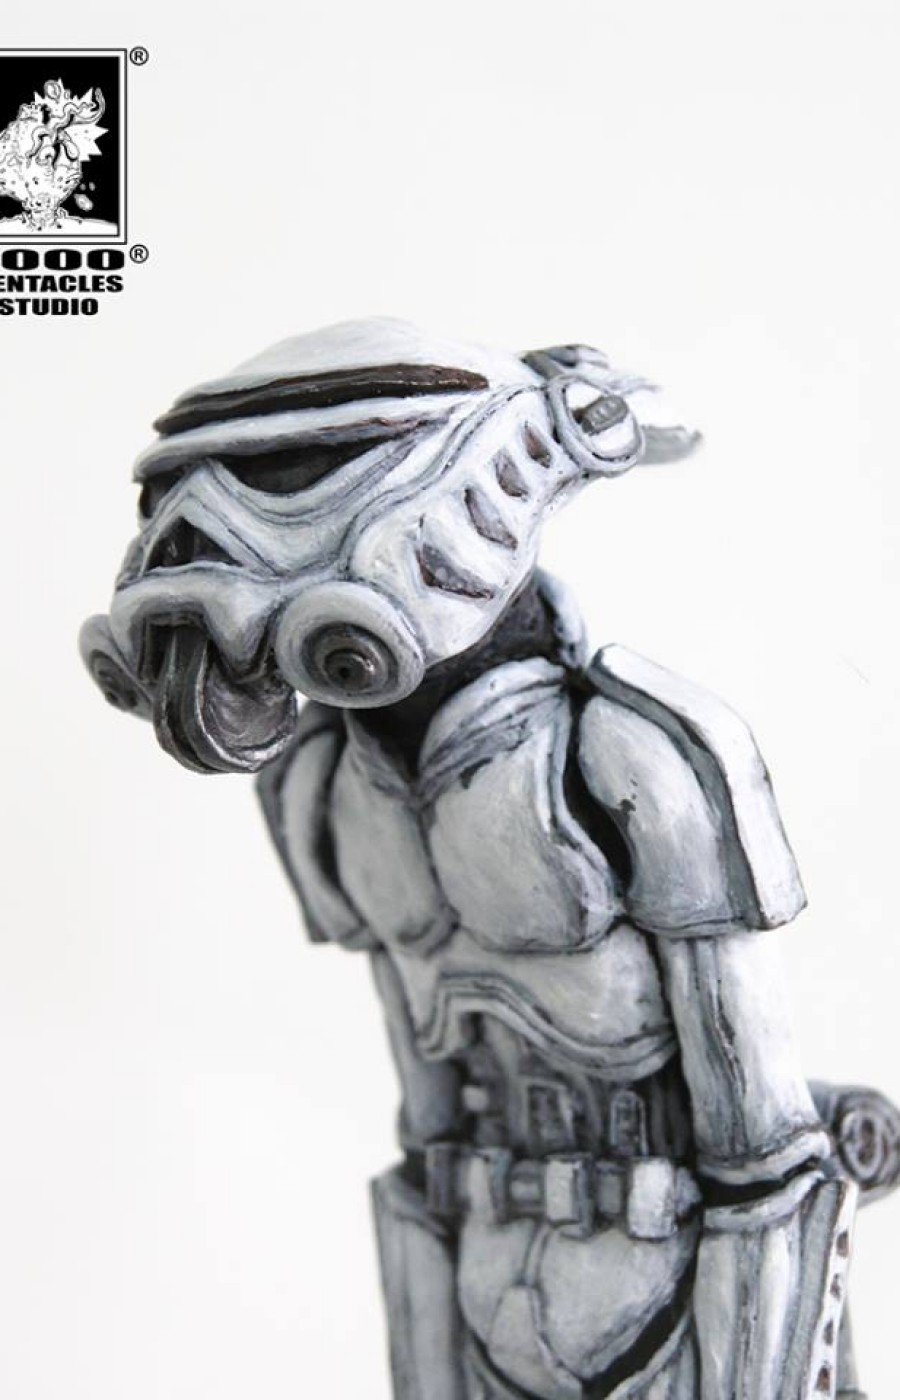 1000Tentacles Star wars series storm trooper